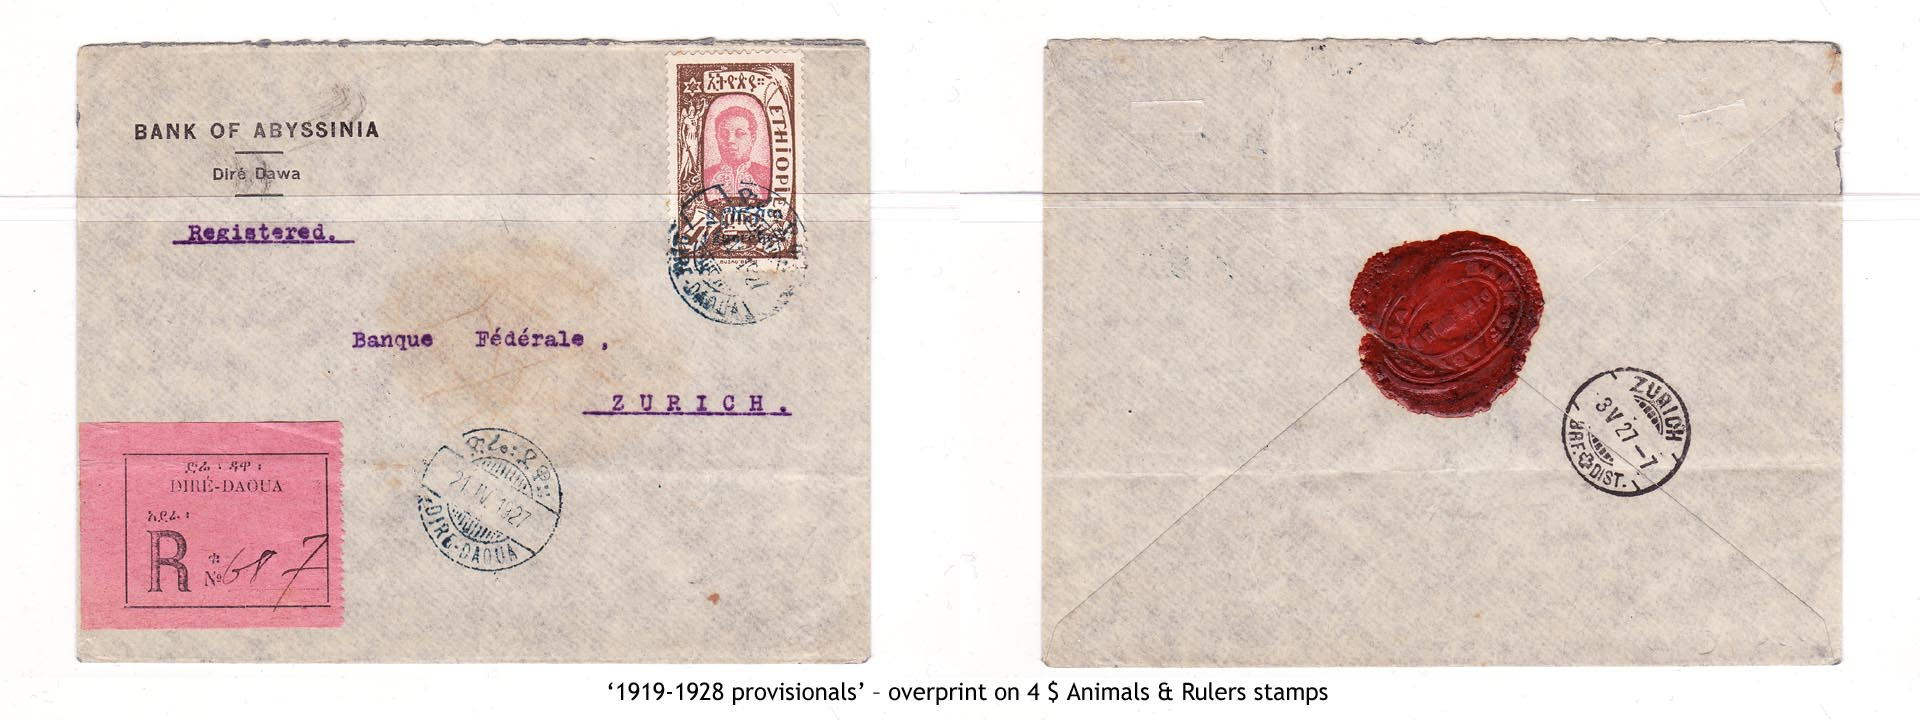 1919-1928 provisionals' – overprint on 4$ Animals & Rulers stamps